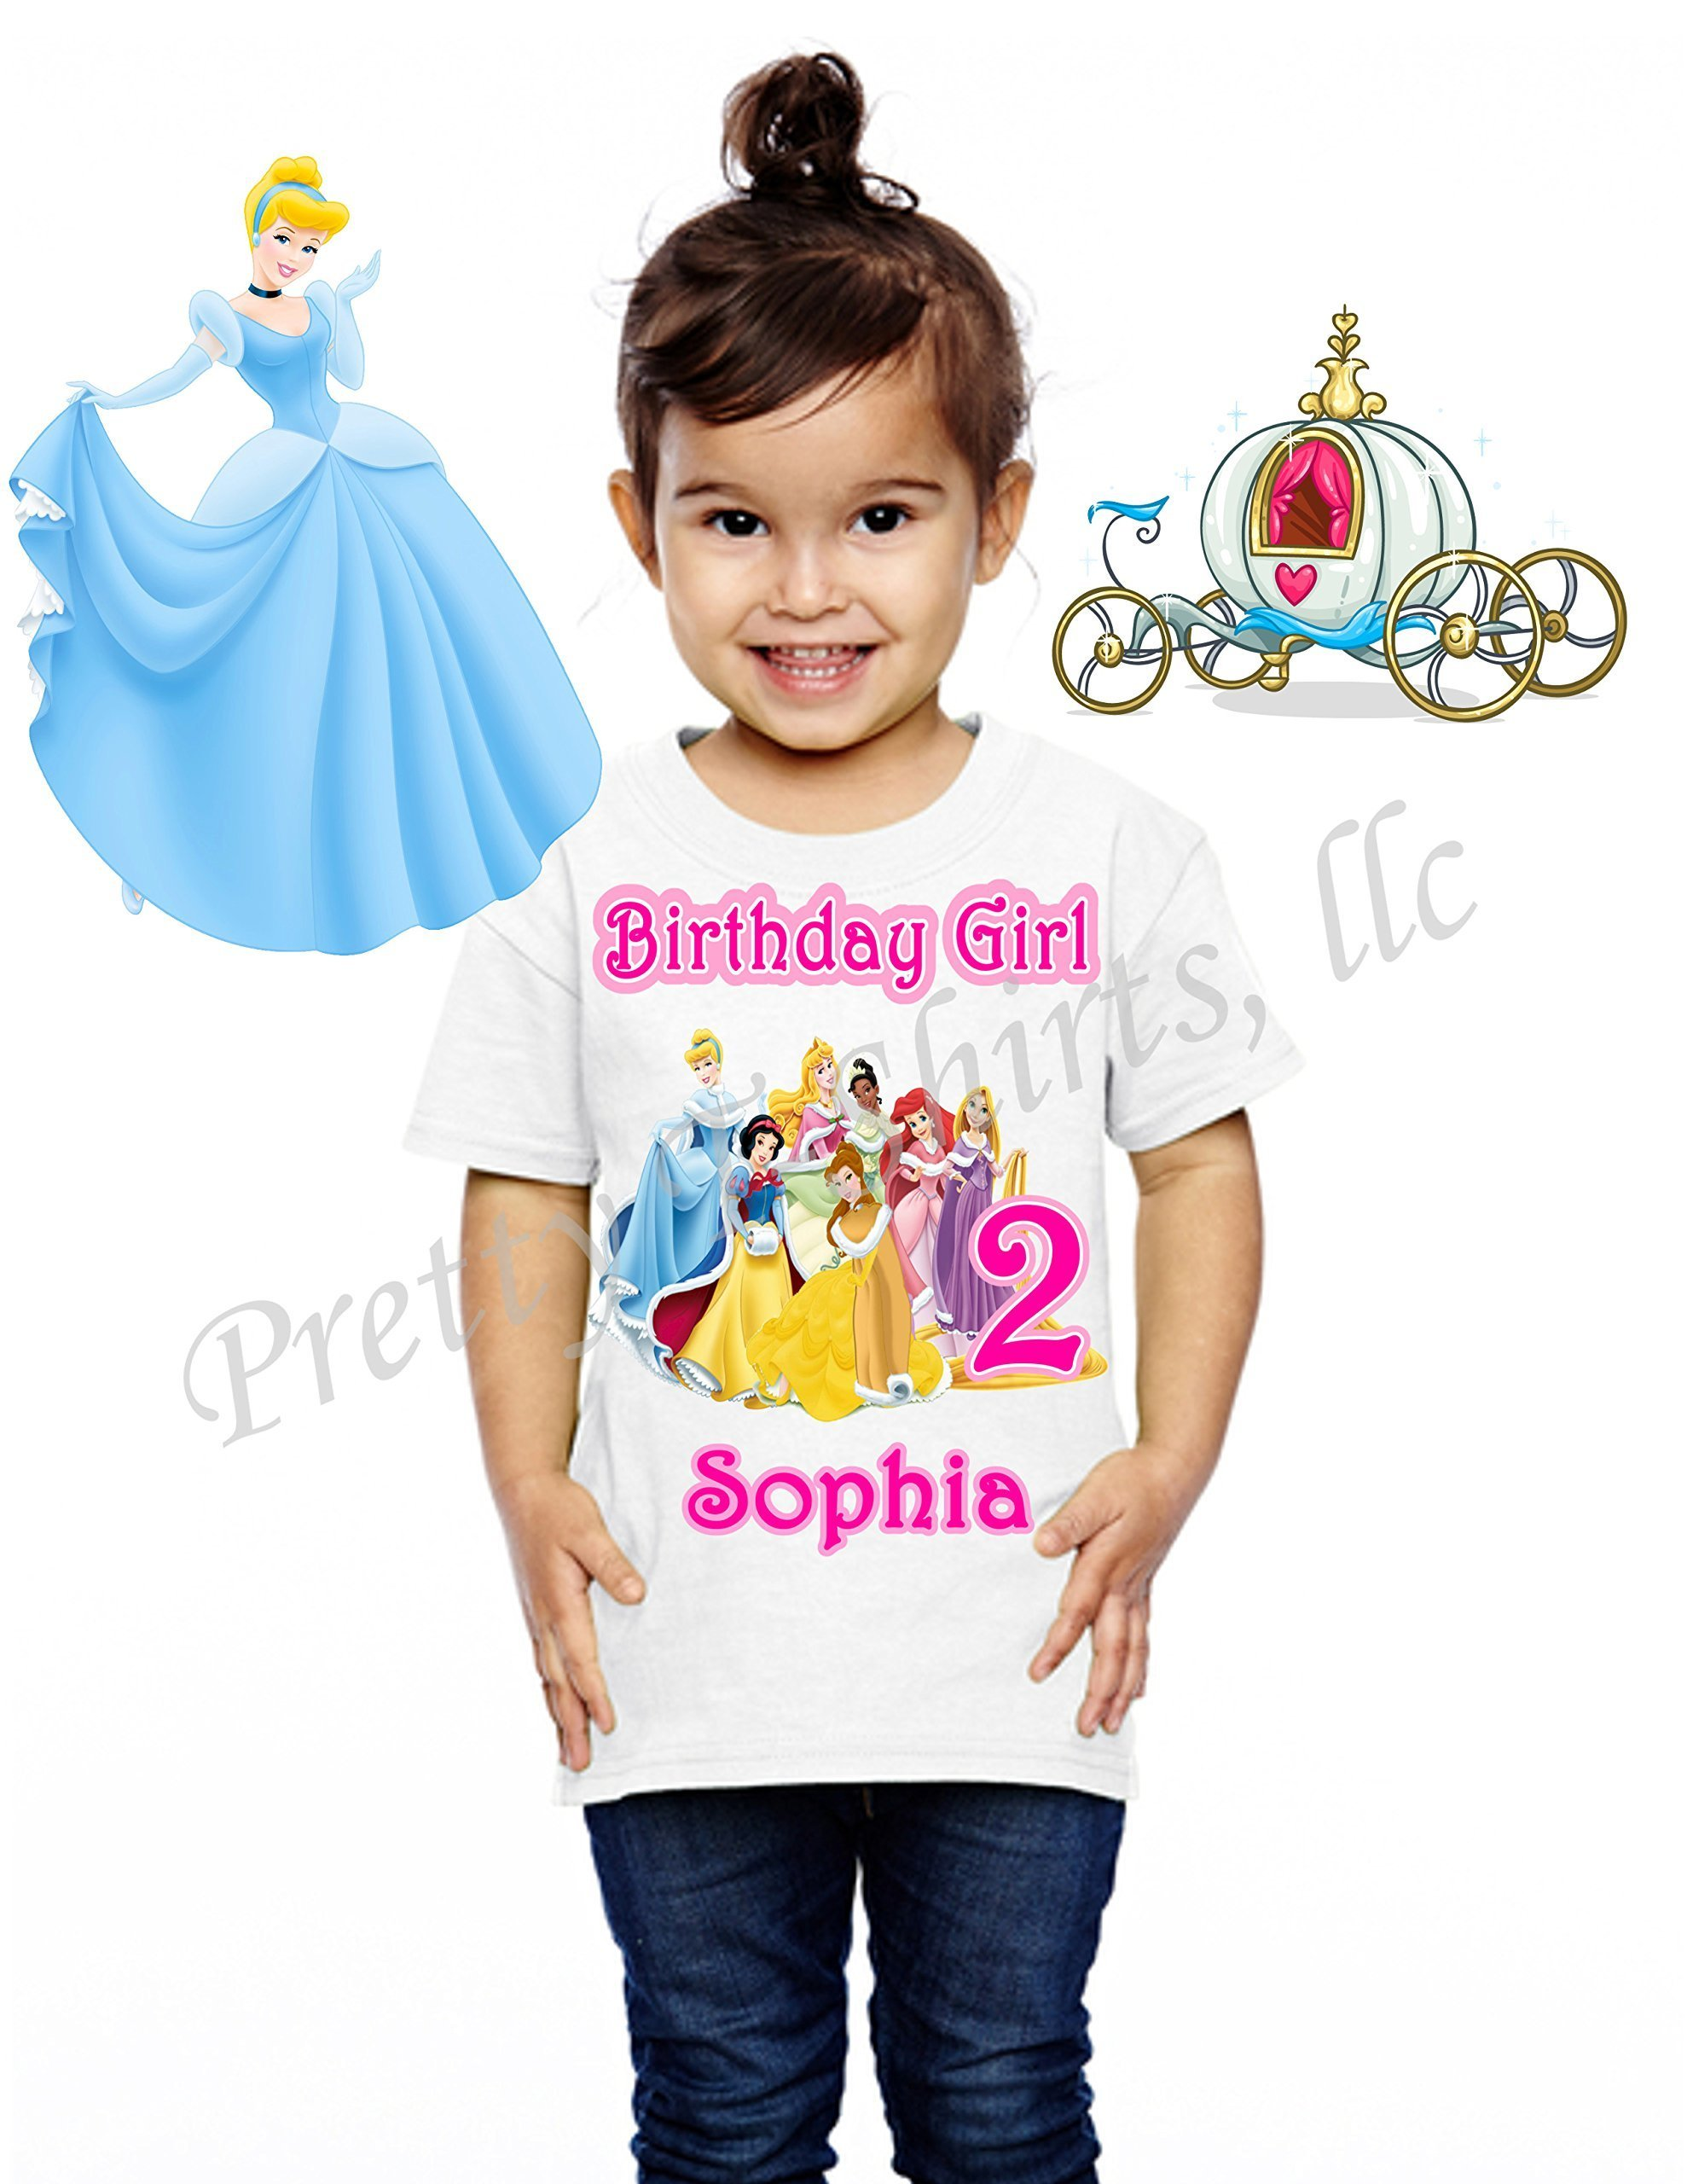 Princess Disney Birthday Shirt, ADD any name and any age, Princess Birthday Party, FAMILY Matching Shirts, Princess: Belle, Cinderella, Aurora, Tiana, Ariel, Snow White, Rapunzel, VISIT OUR SHOP!